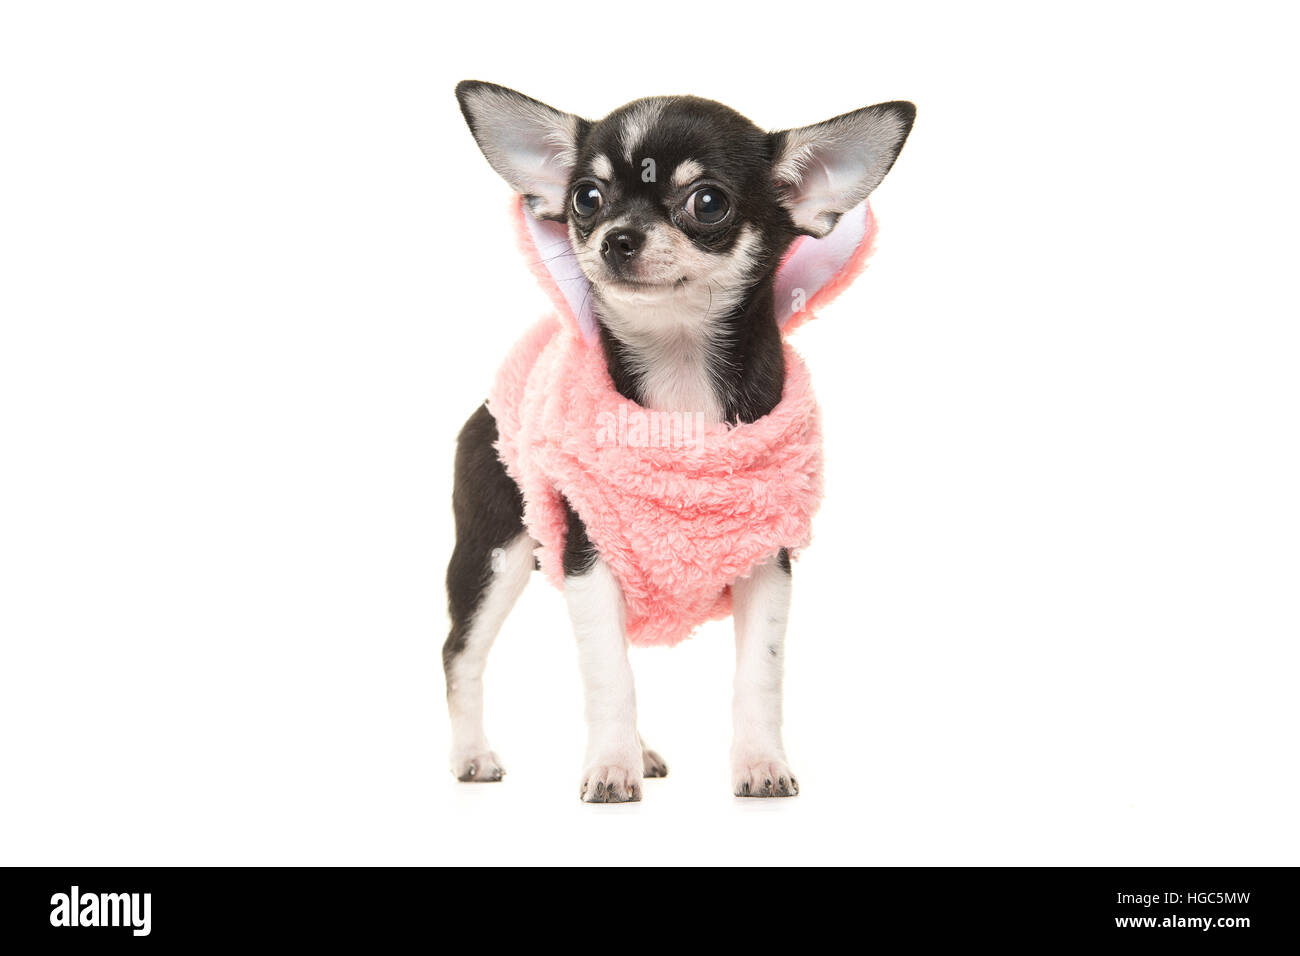 Cute black and white chihuahua puppy waring a pink sweater facing the camera isolated on a white background - Stock Image